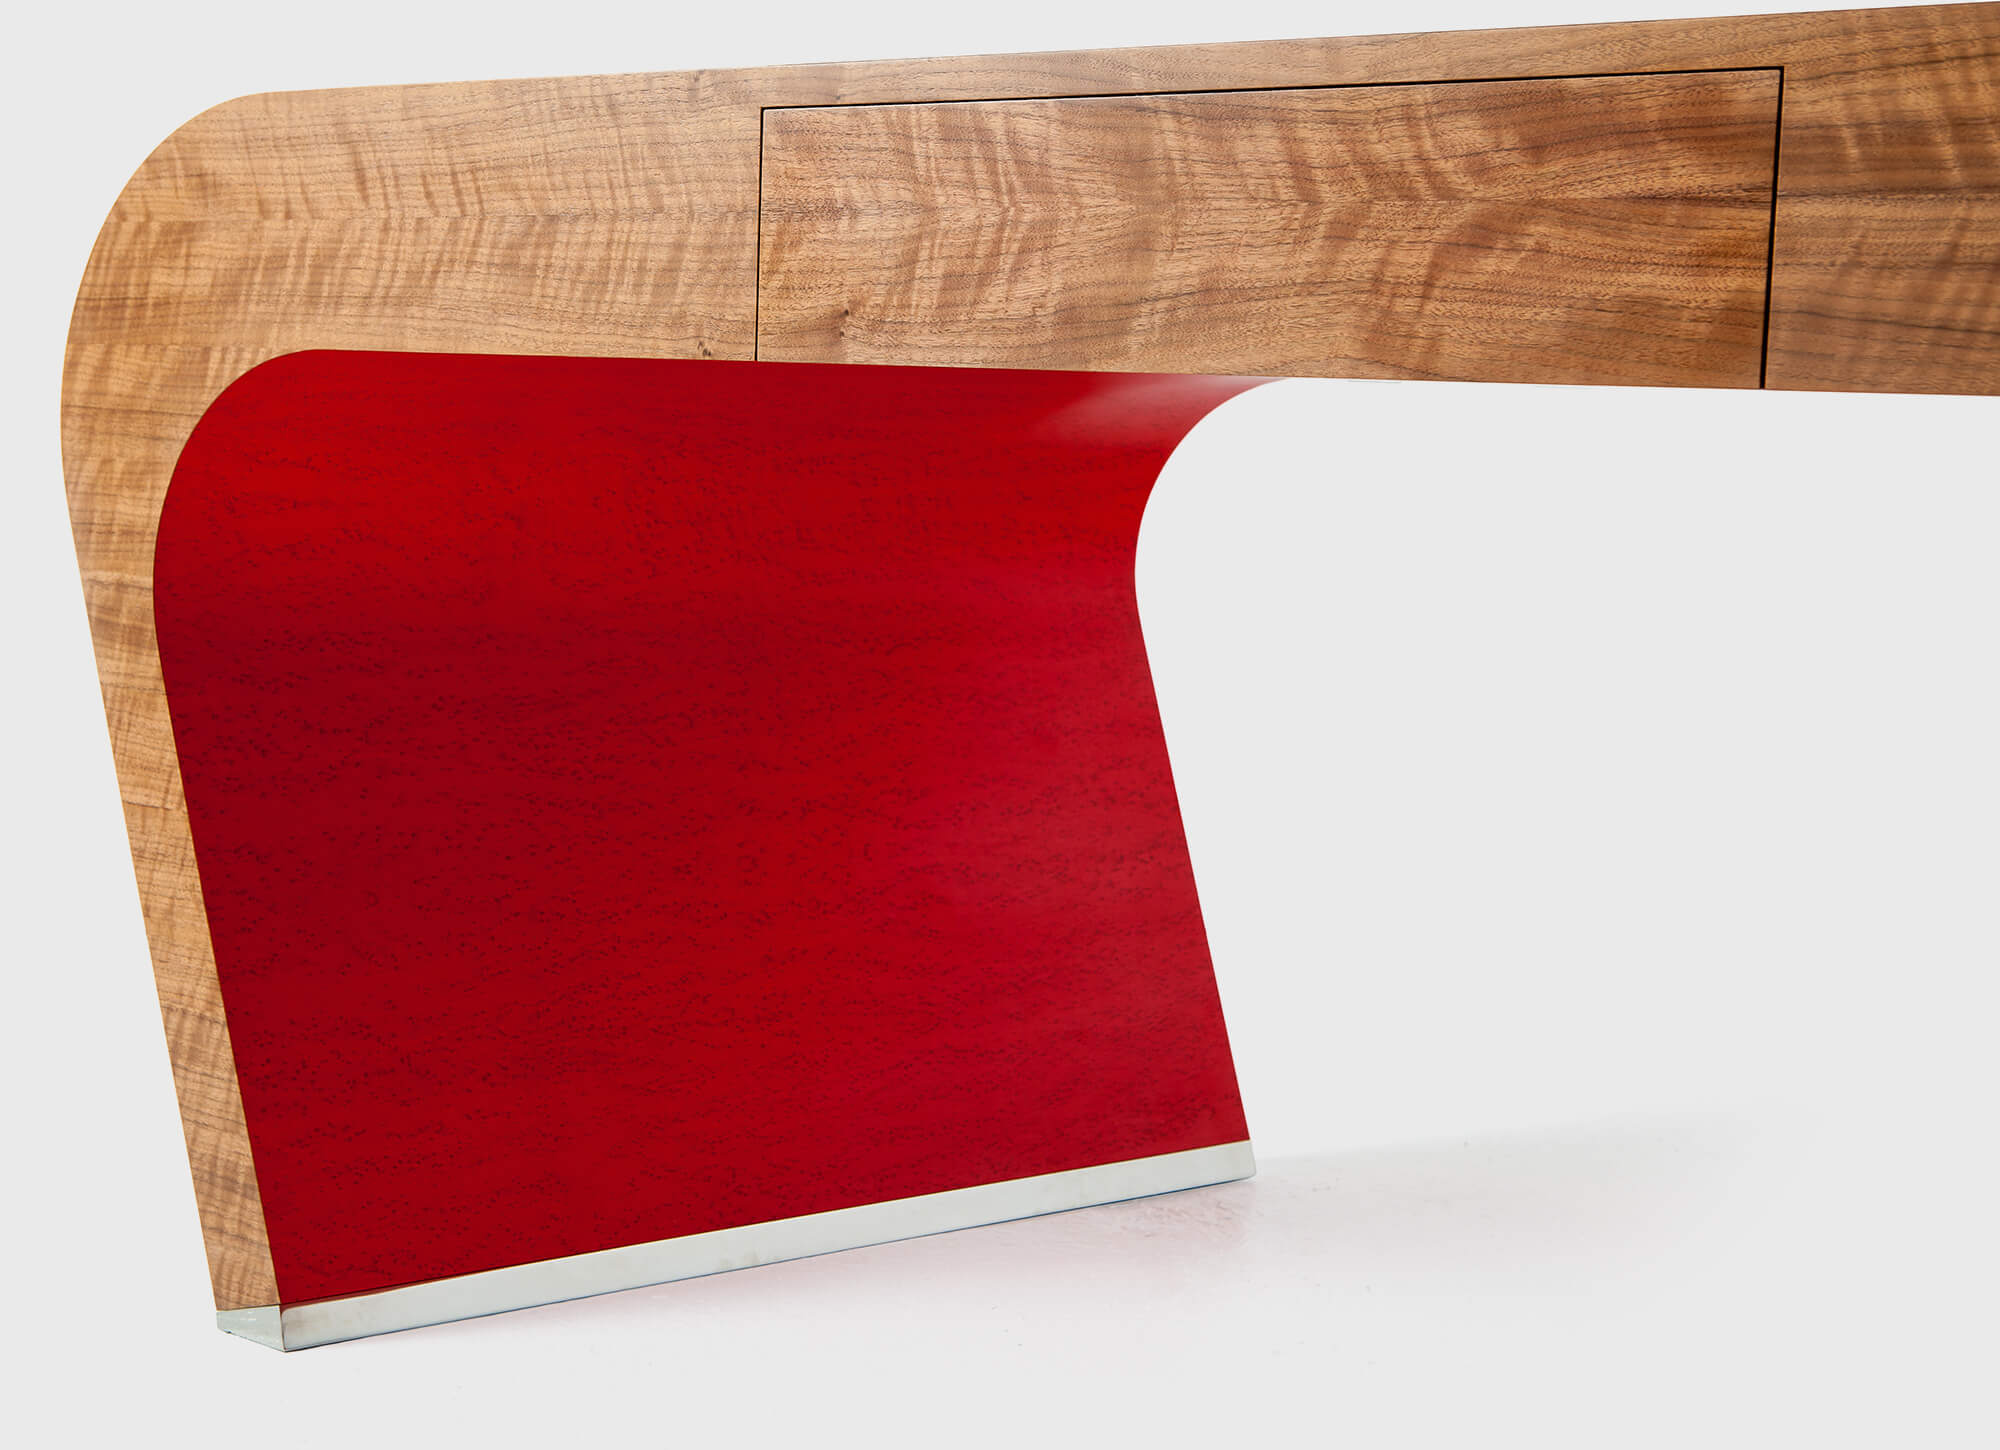 Custom made luxury desk with red and metal detail by Splinterworks